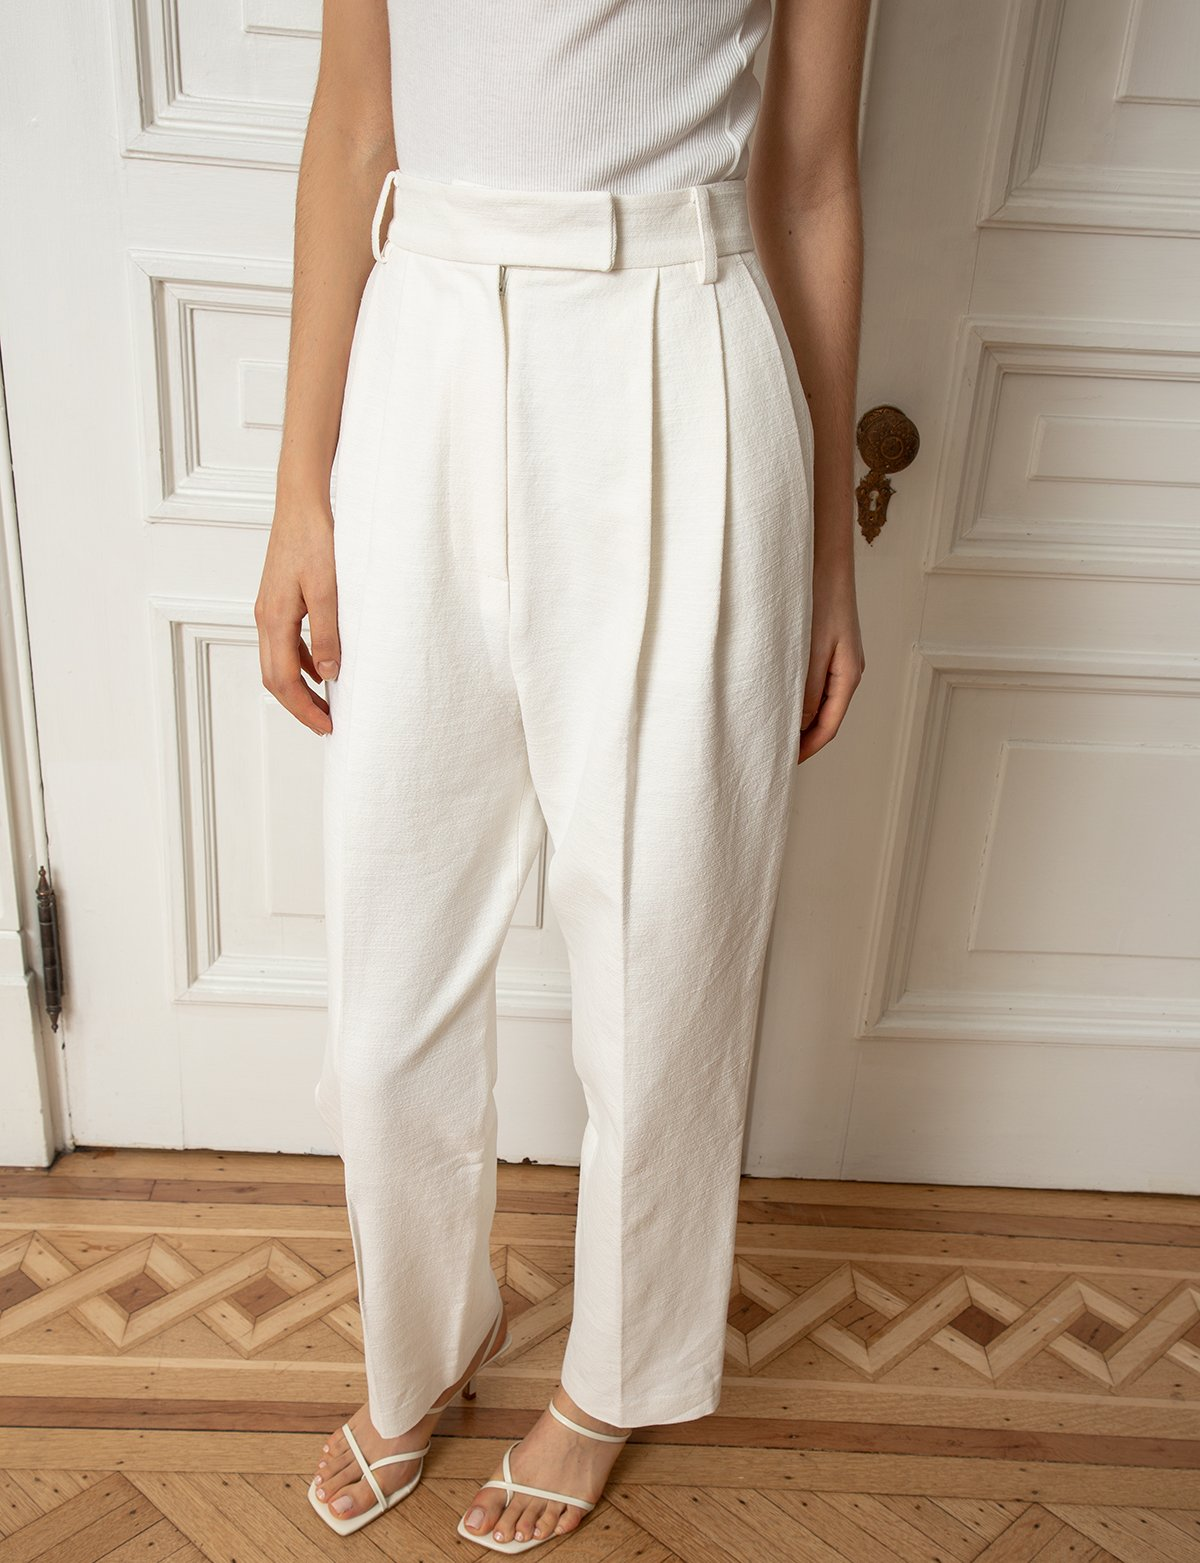 All-White Summer Outfit Inspiration — Pants and Strappy Sandals